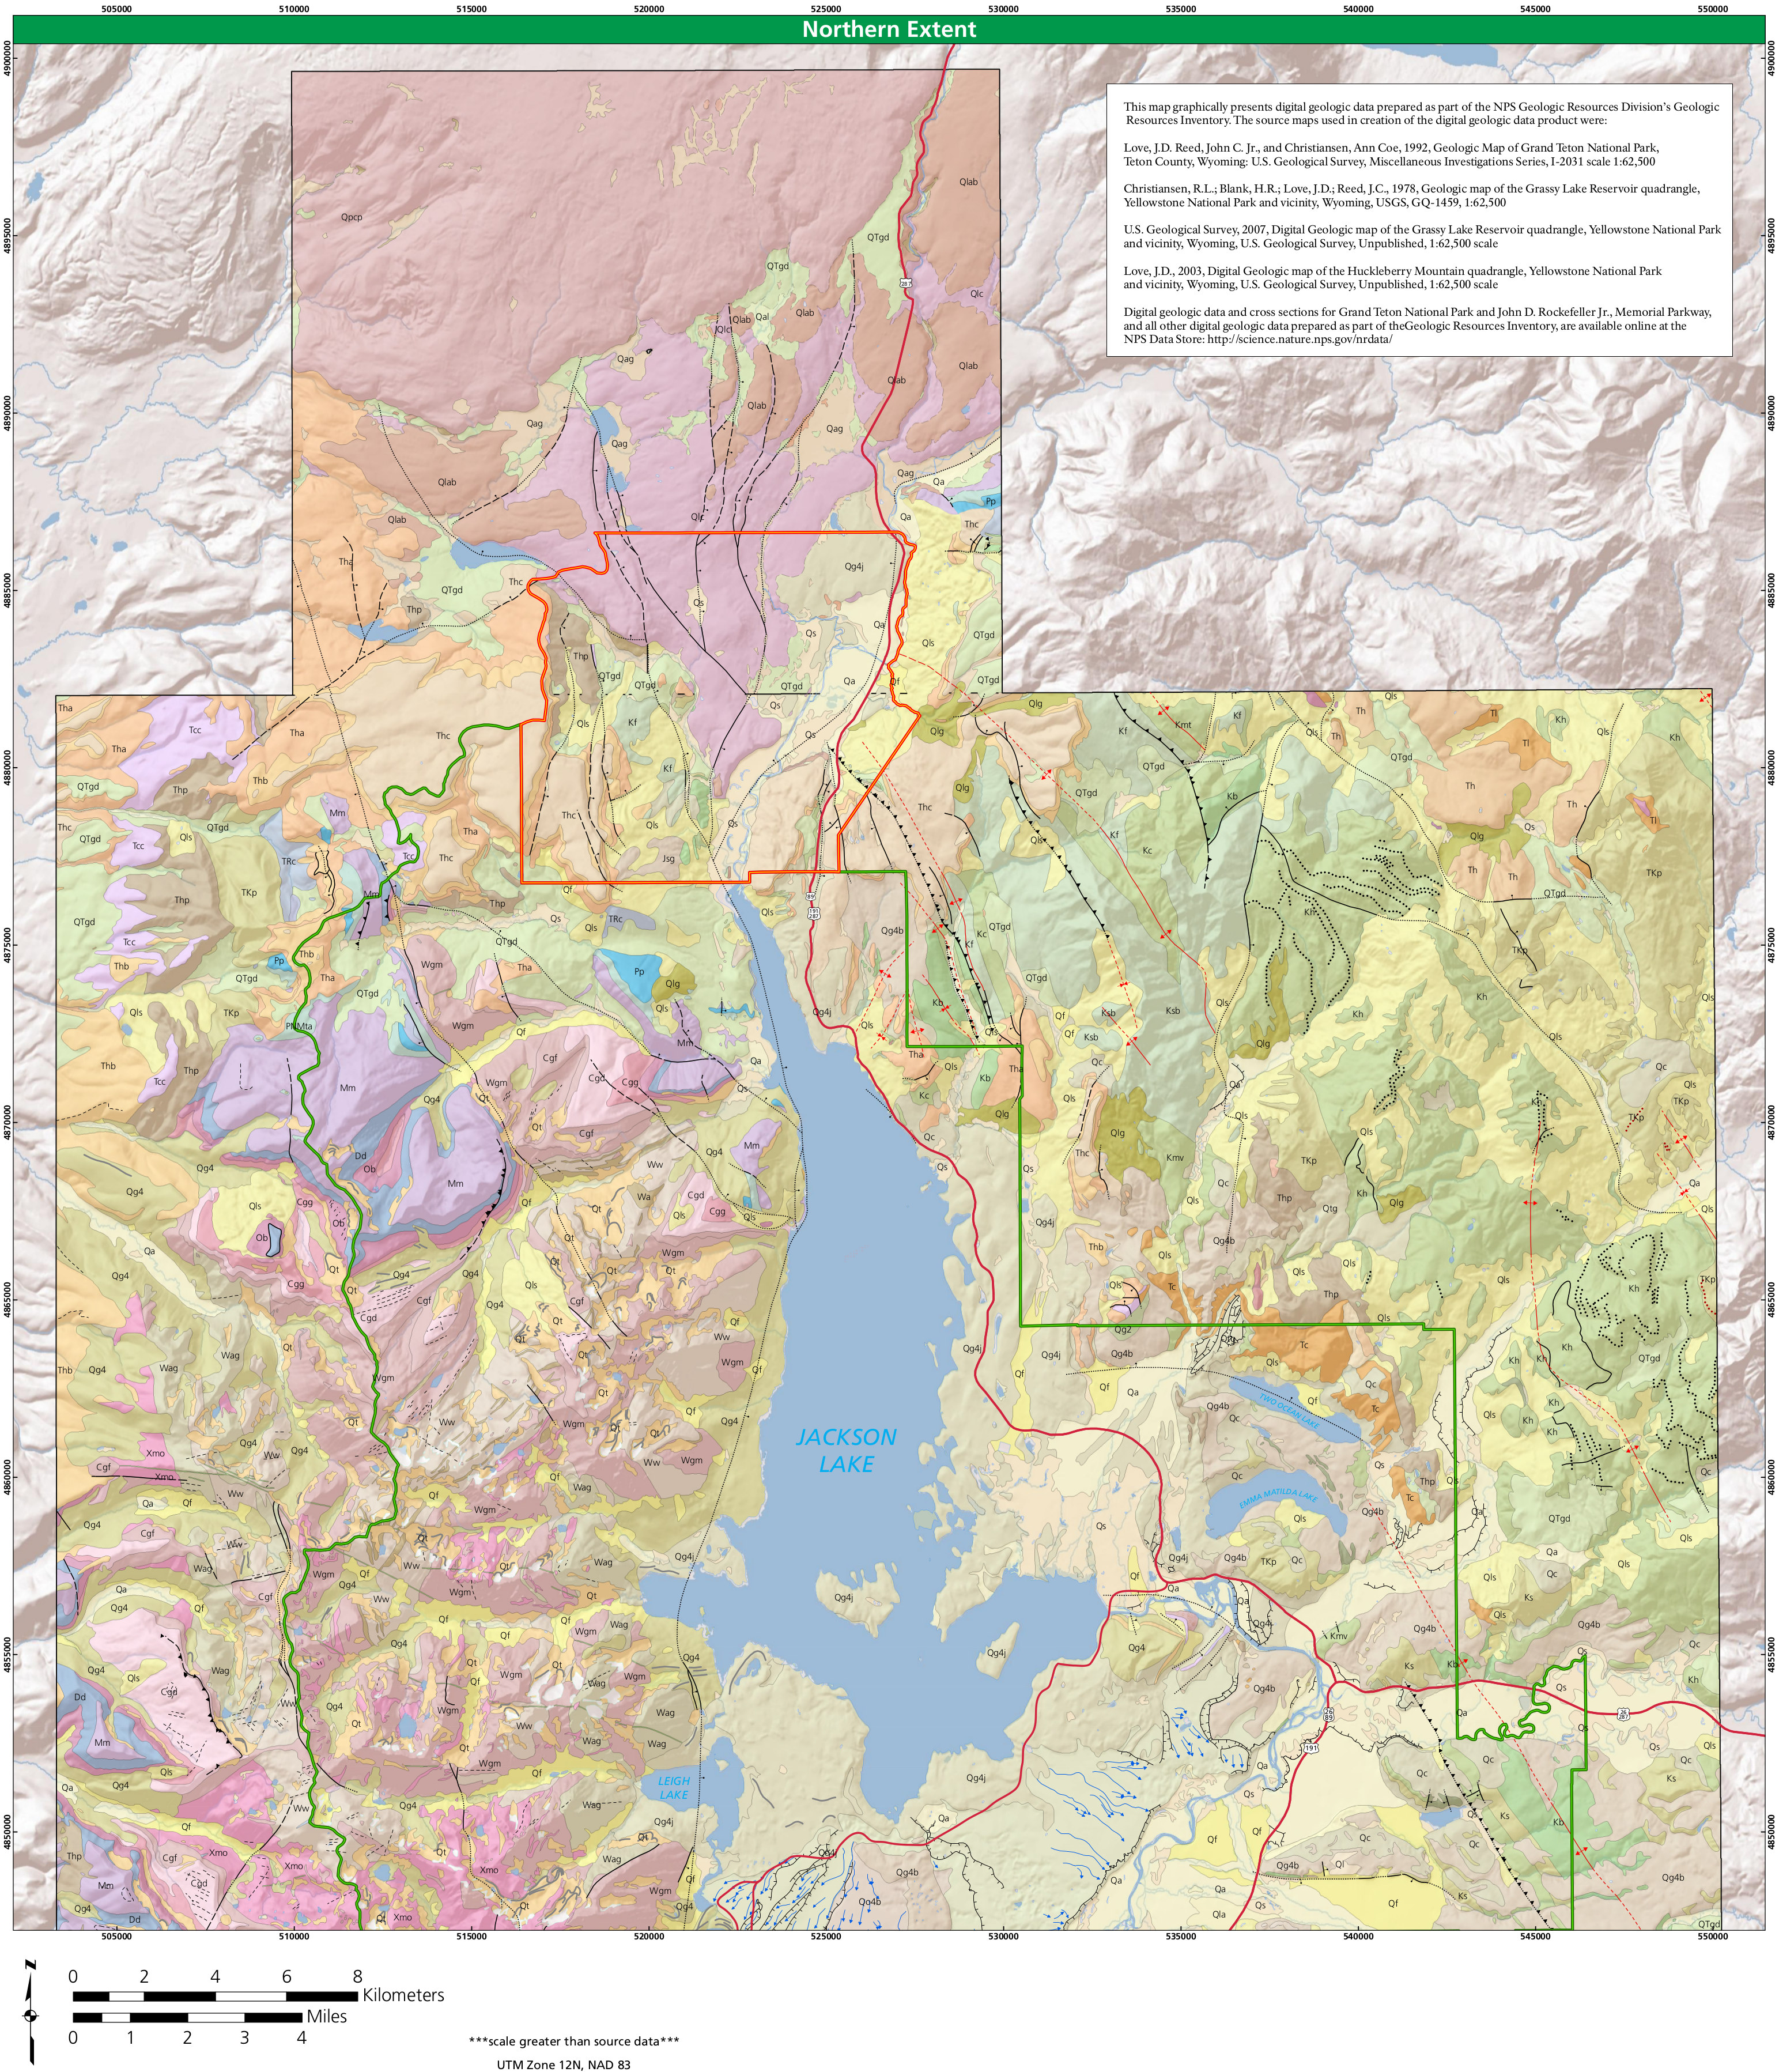 Grand Teton Maps NPMapscom Just Free Maps Period - Map of us national parks poster